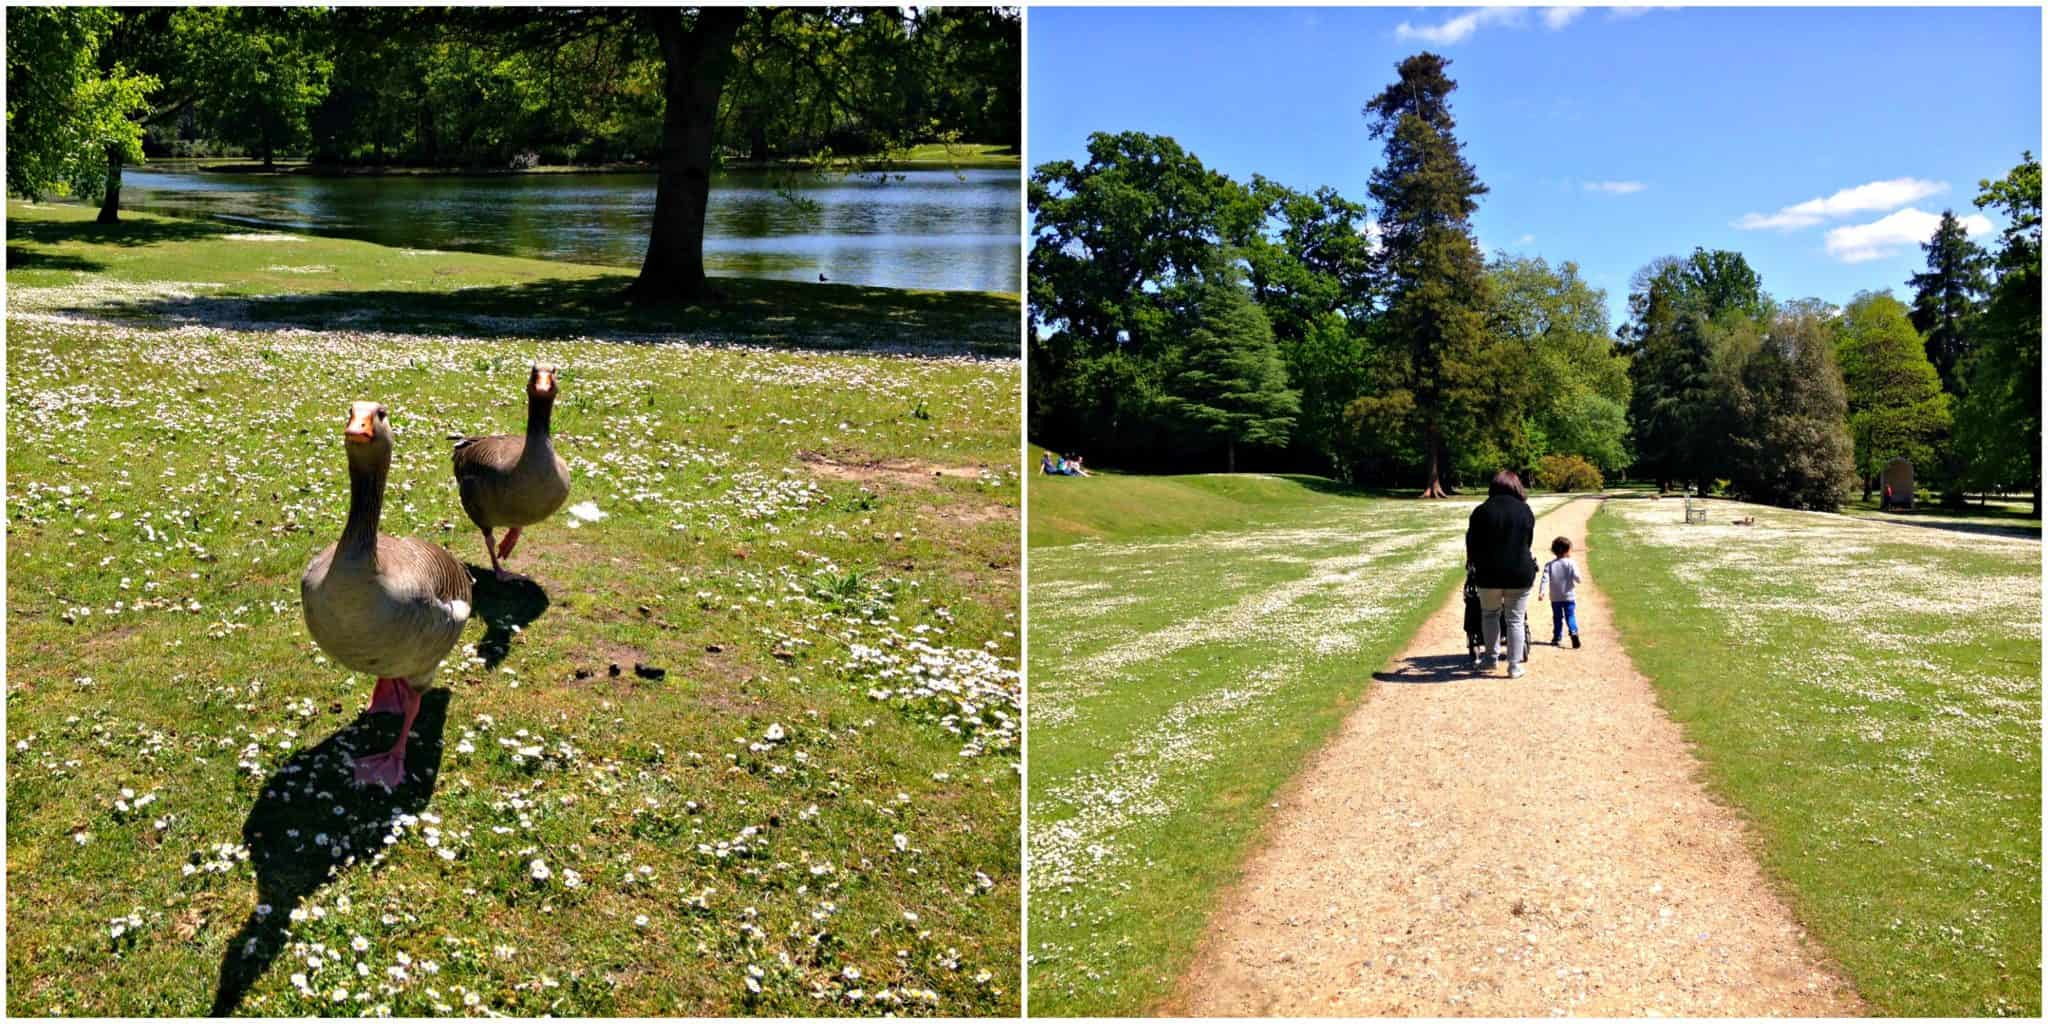 The ducks at National Trust's Claremont Gardens in Surrey My Travel Monkey